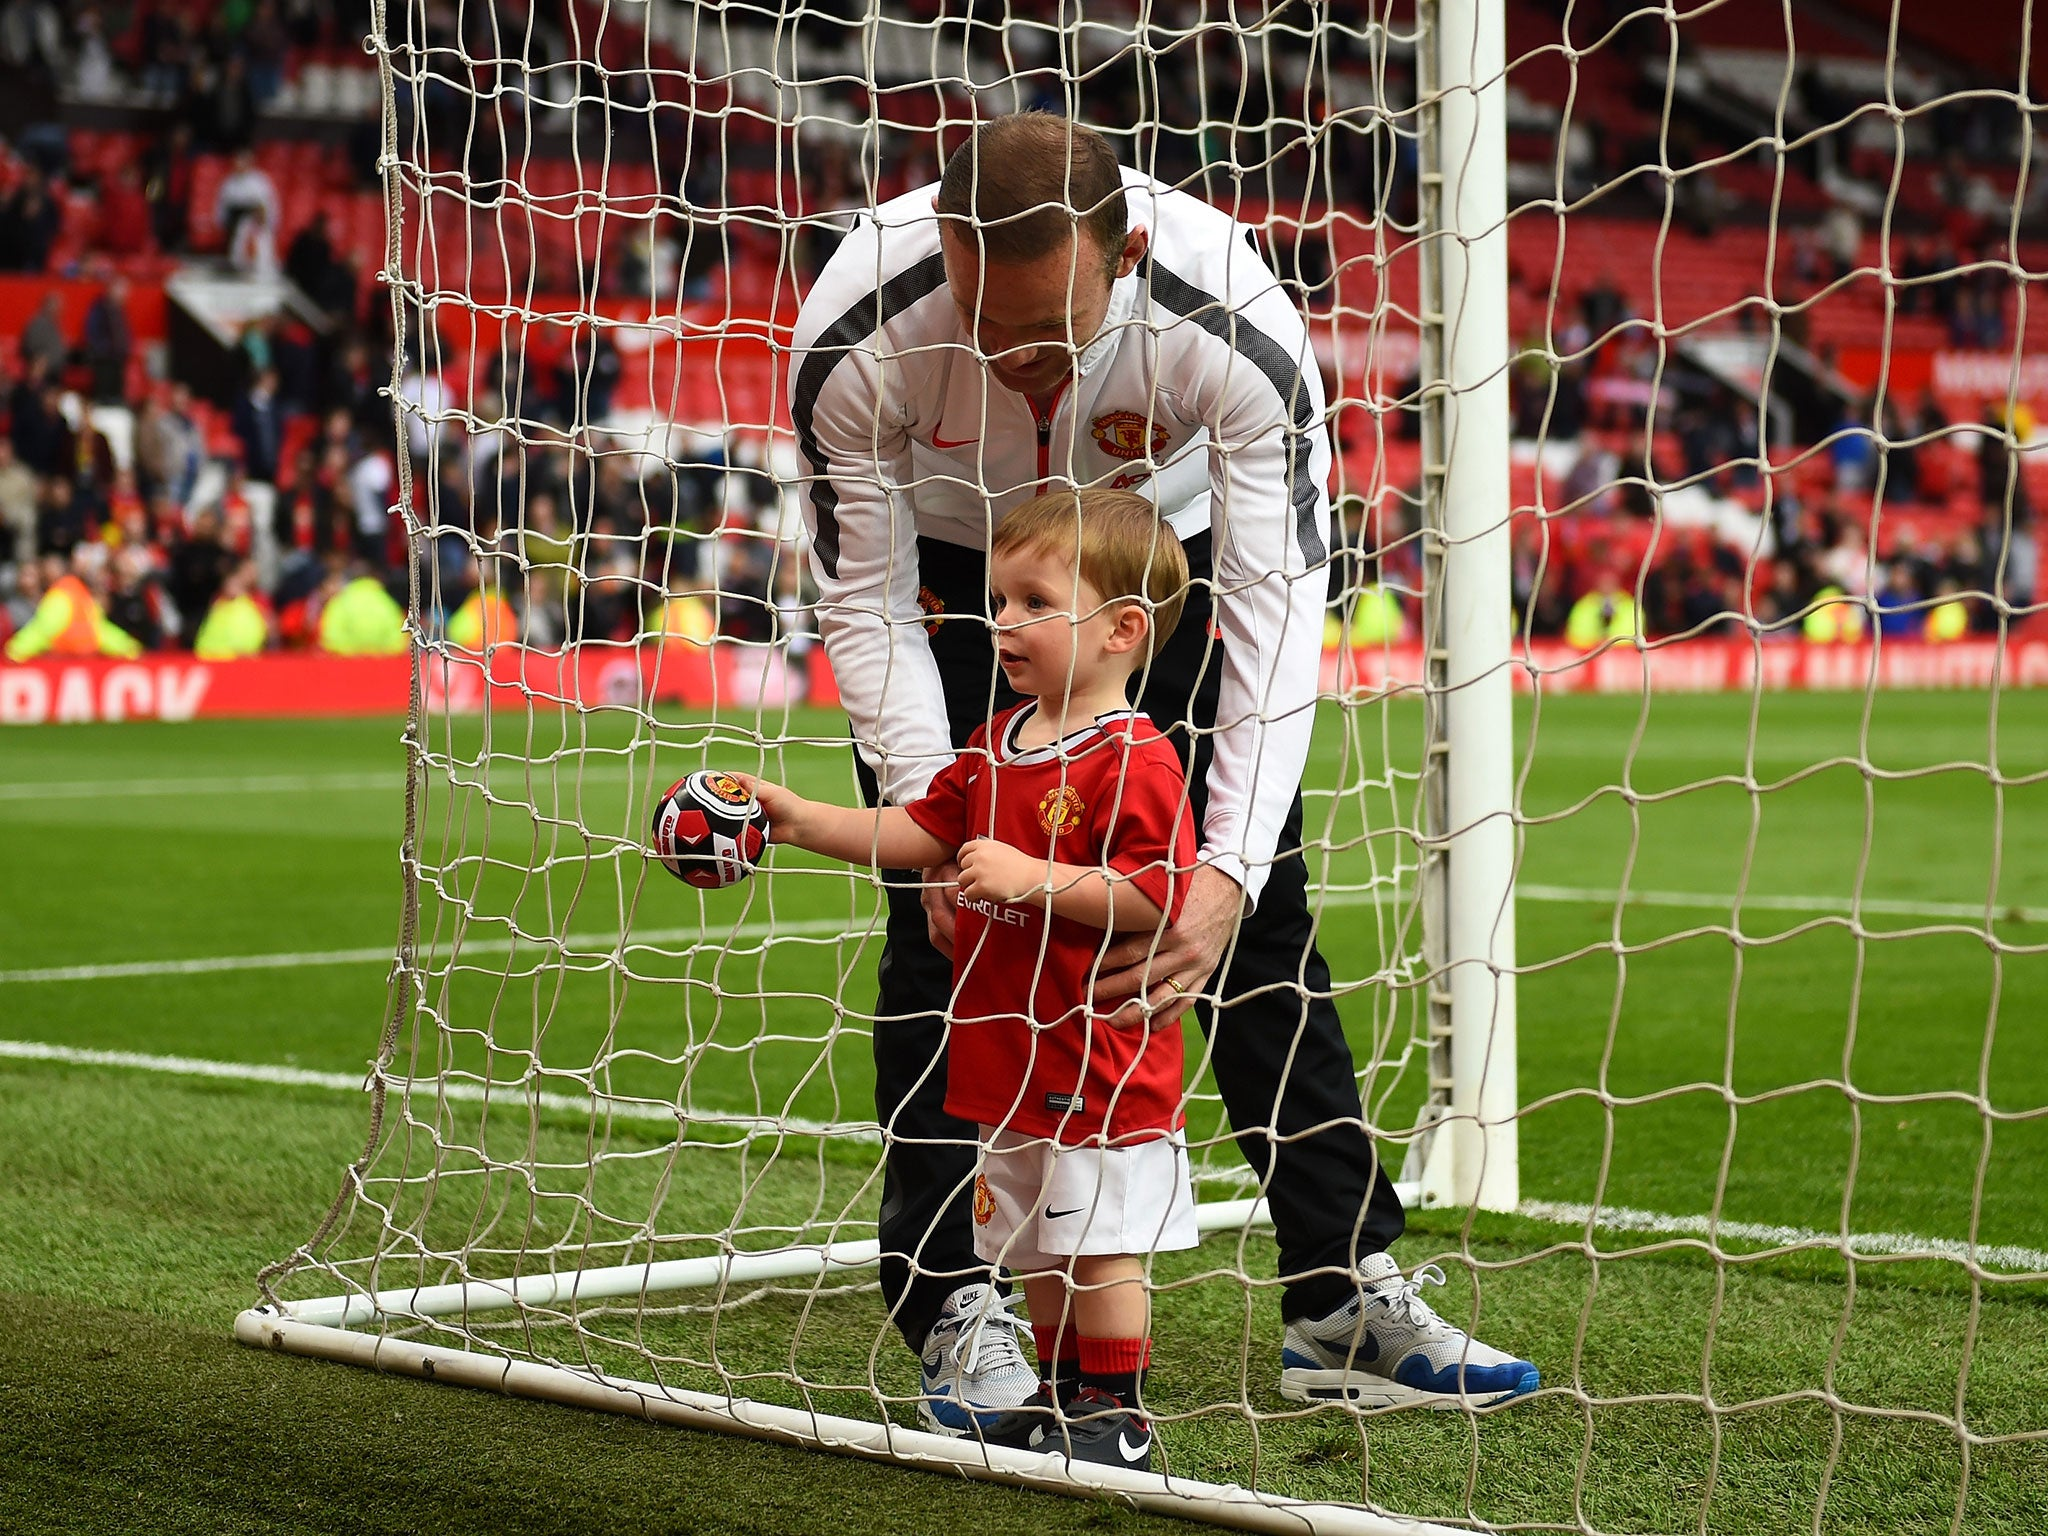 Old Trafford erupts after Wayne Rooney's one-year-old son Klay puts the ball in the net - video